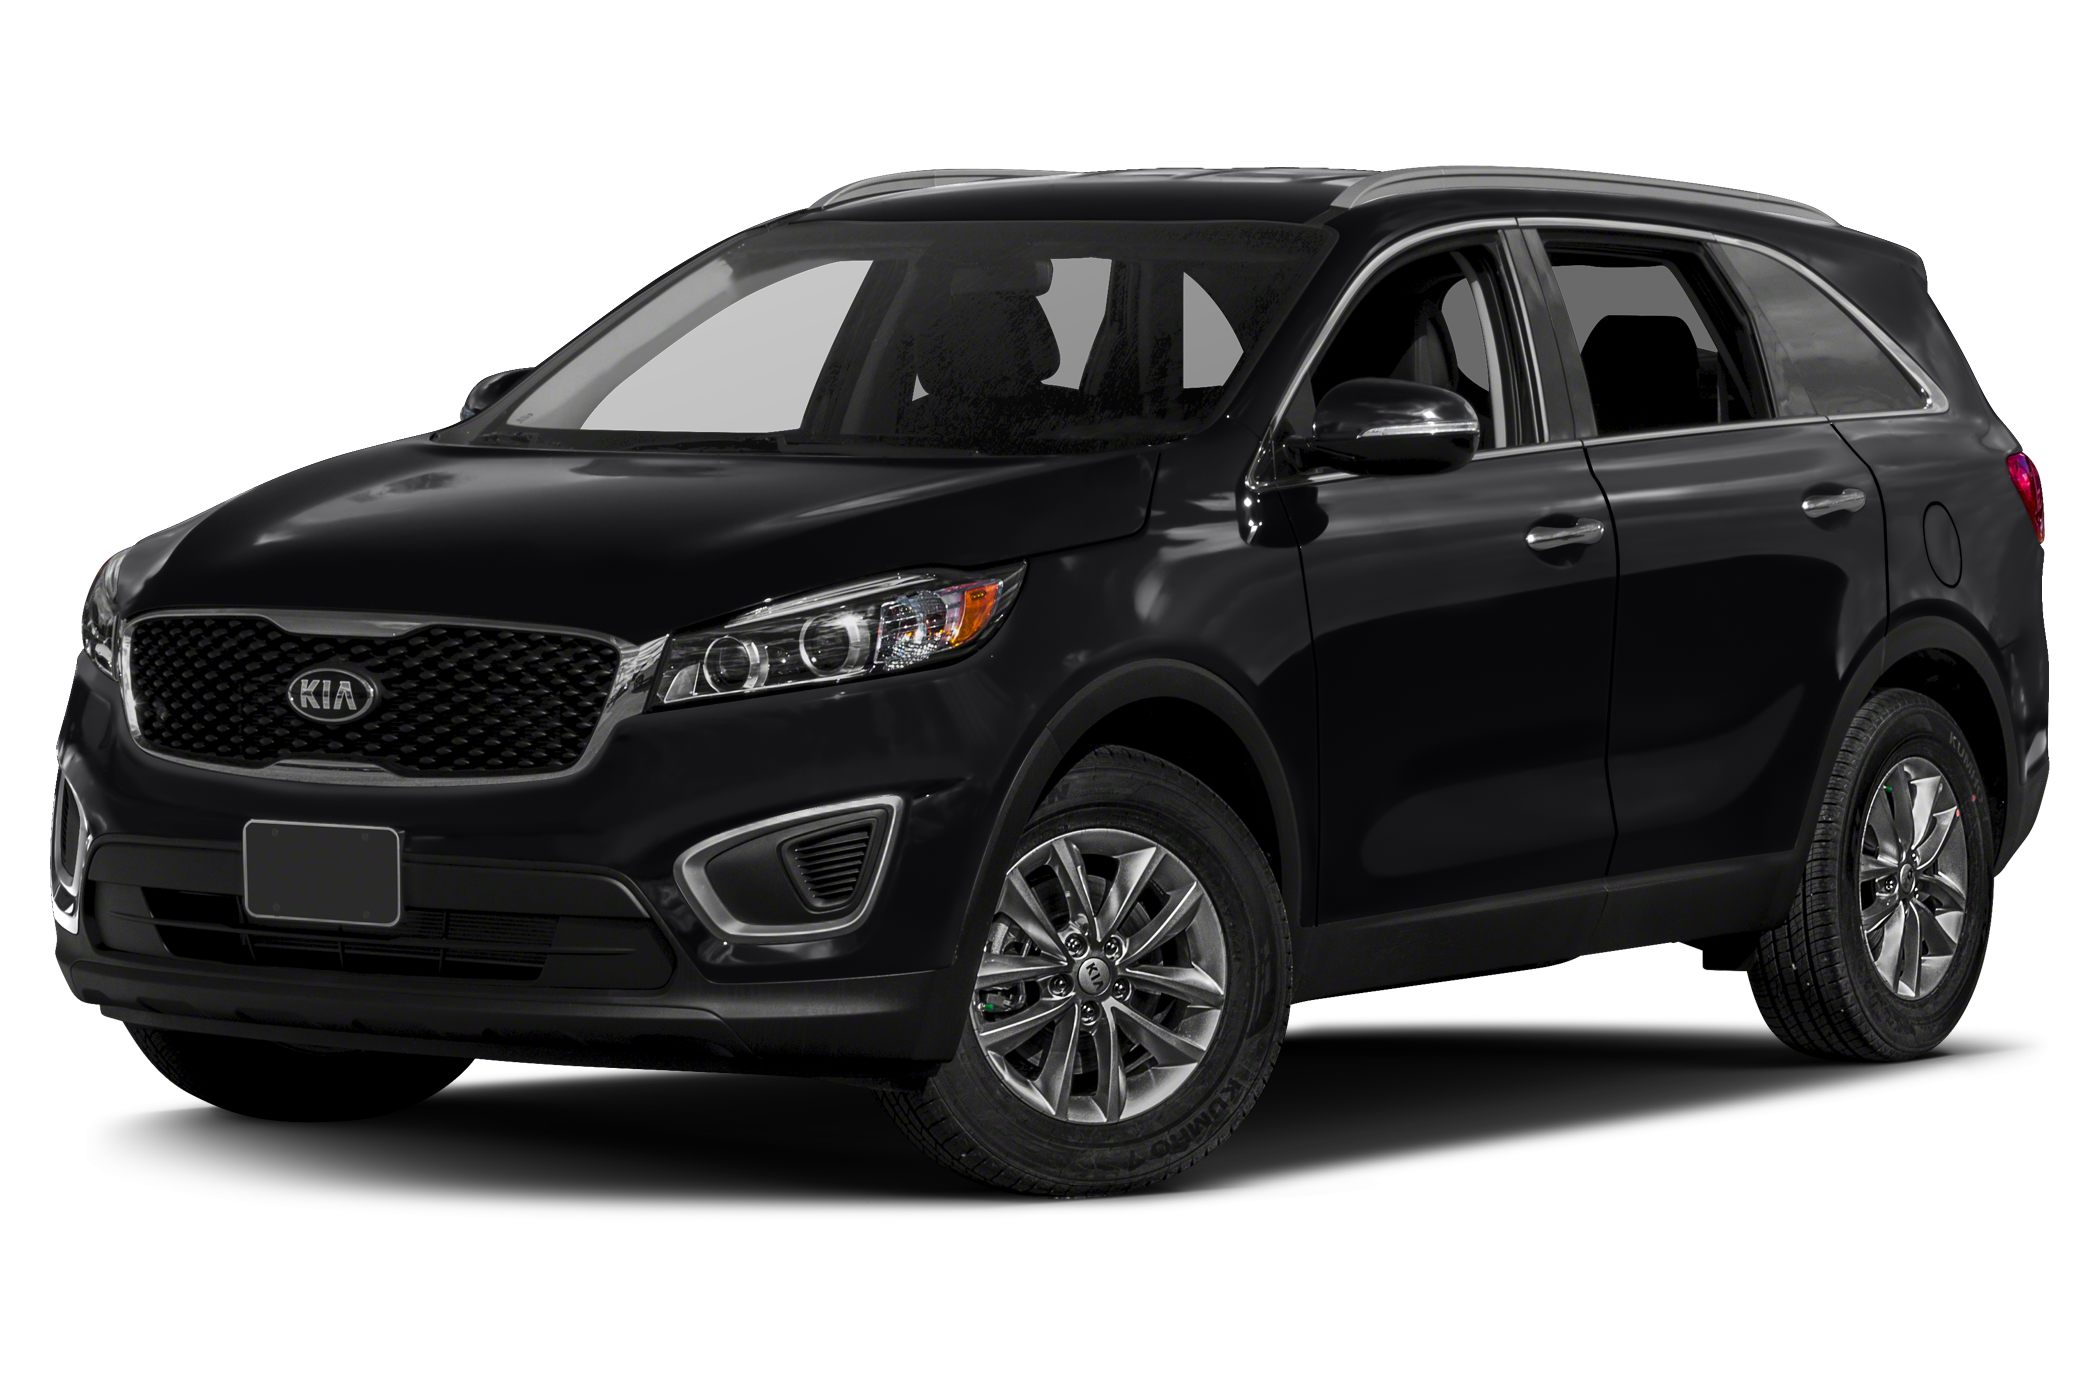 2017 Kia Sorento 24 LX At Sunset Kia of Sarasota we pride ourselves on exceptional customer servi